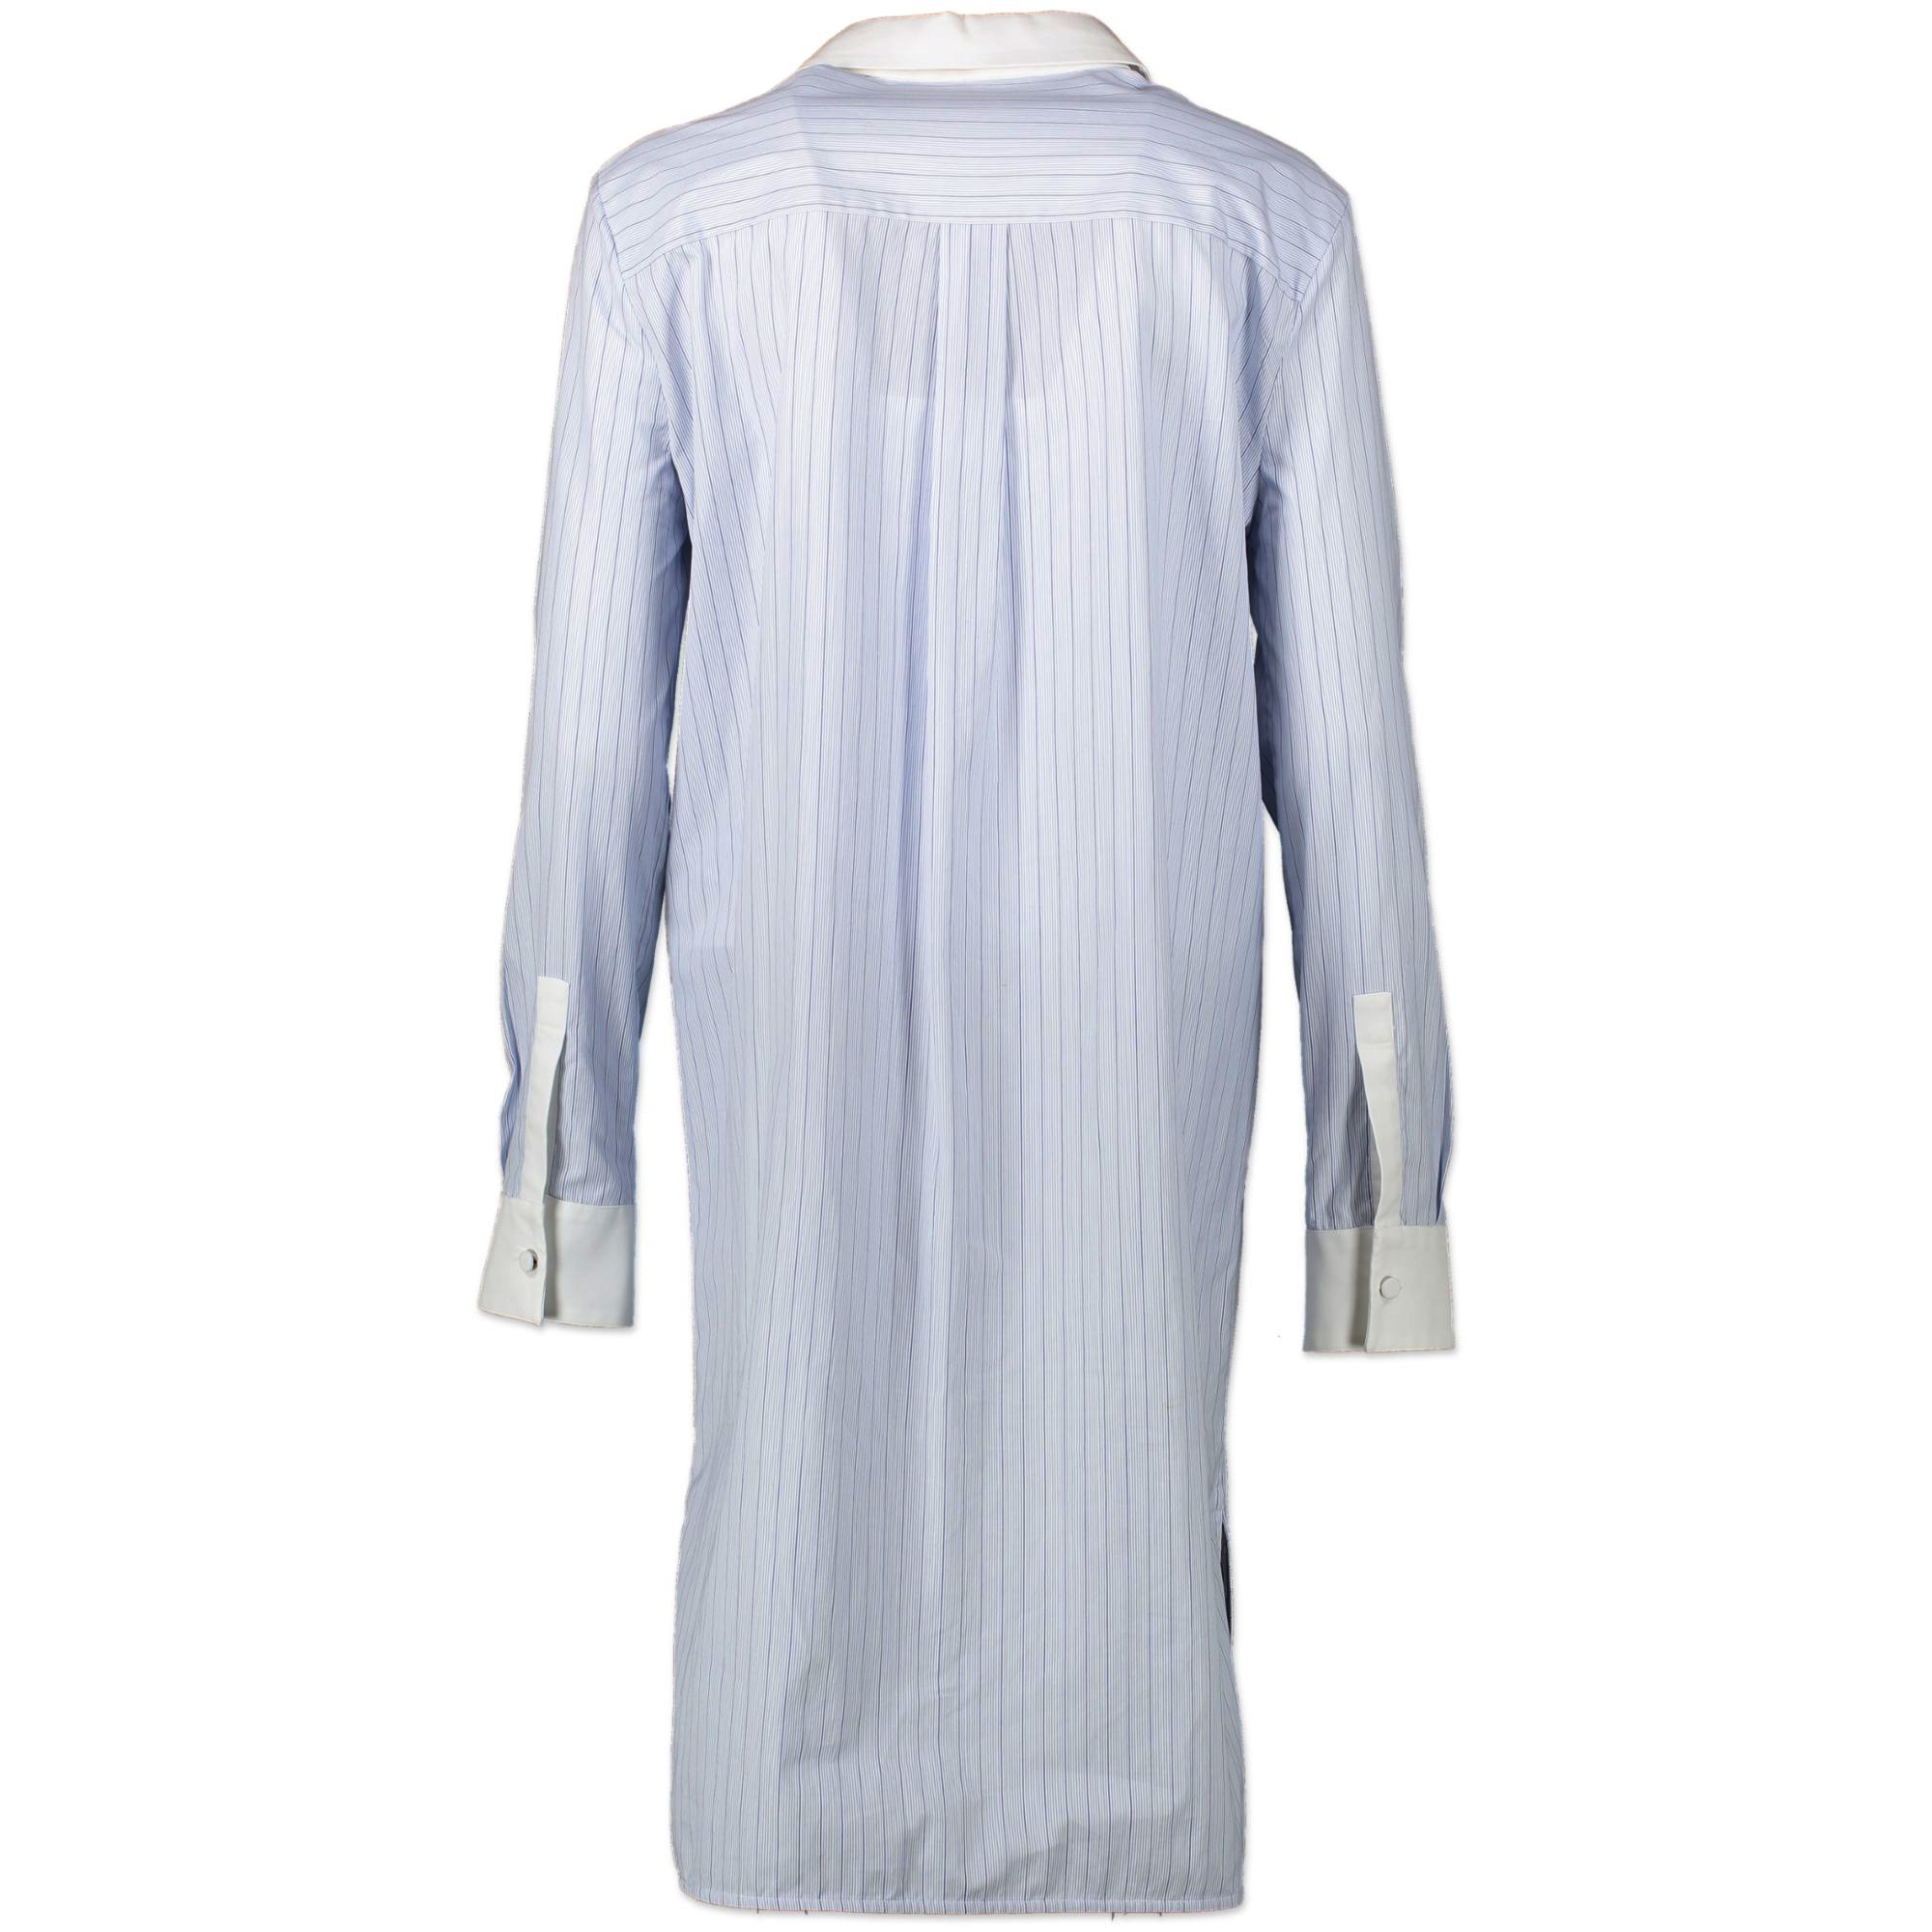 Balenciaga Blue Striped Shirt Dress